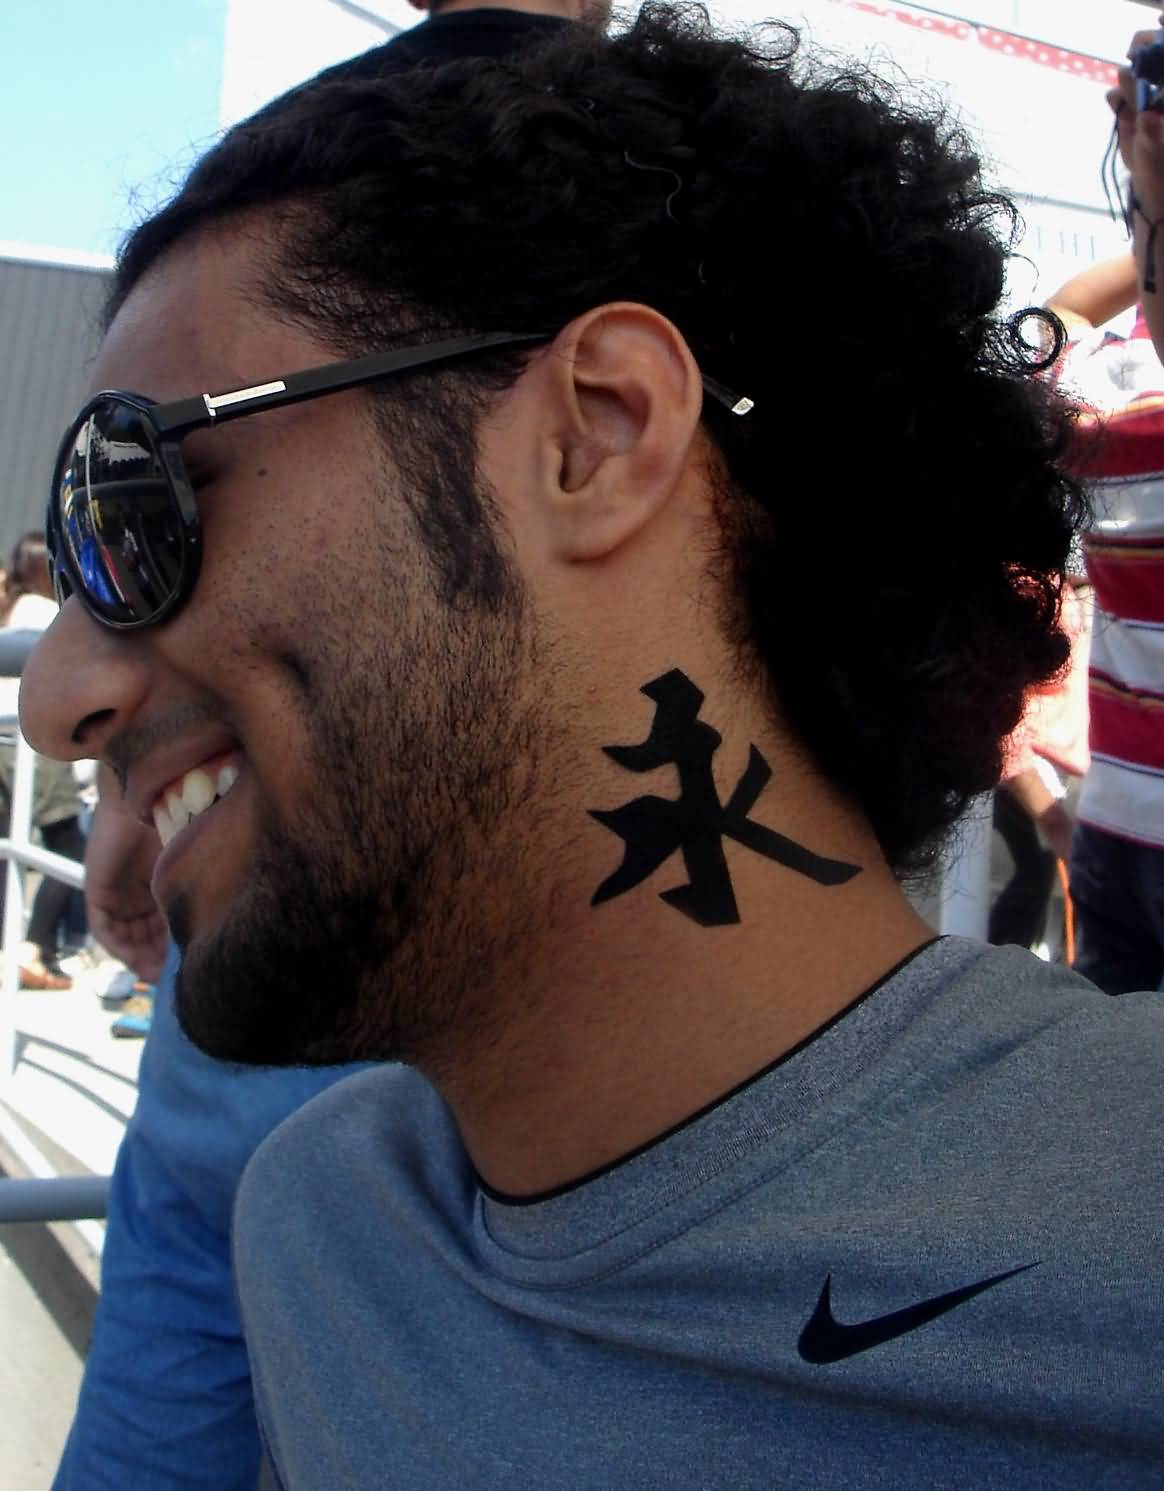 On Neck Kanji Tattoo Design